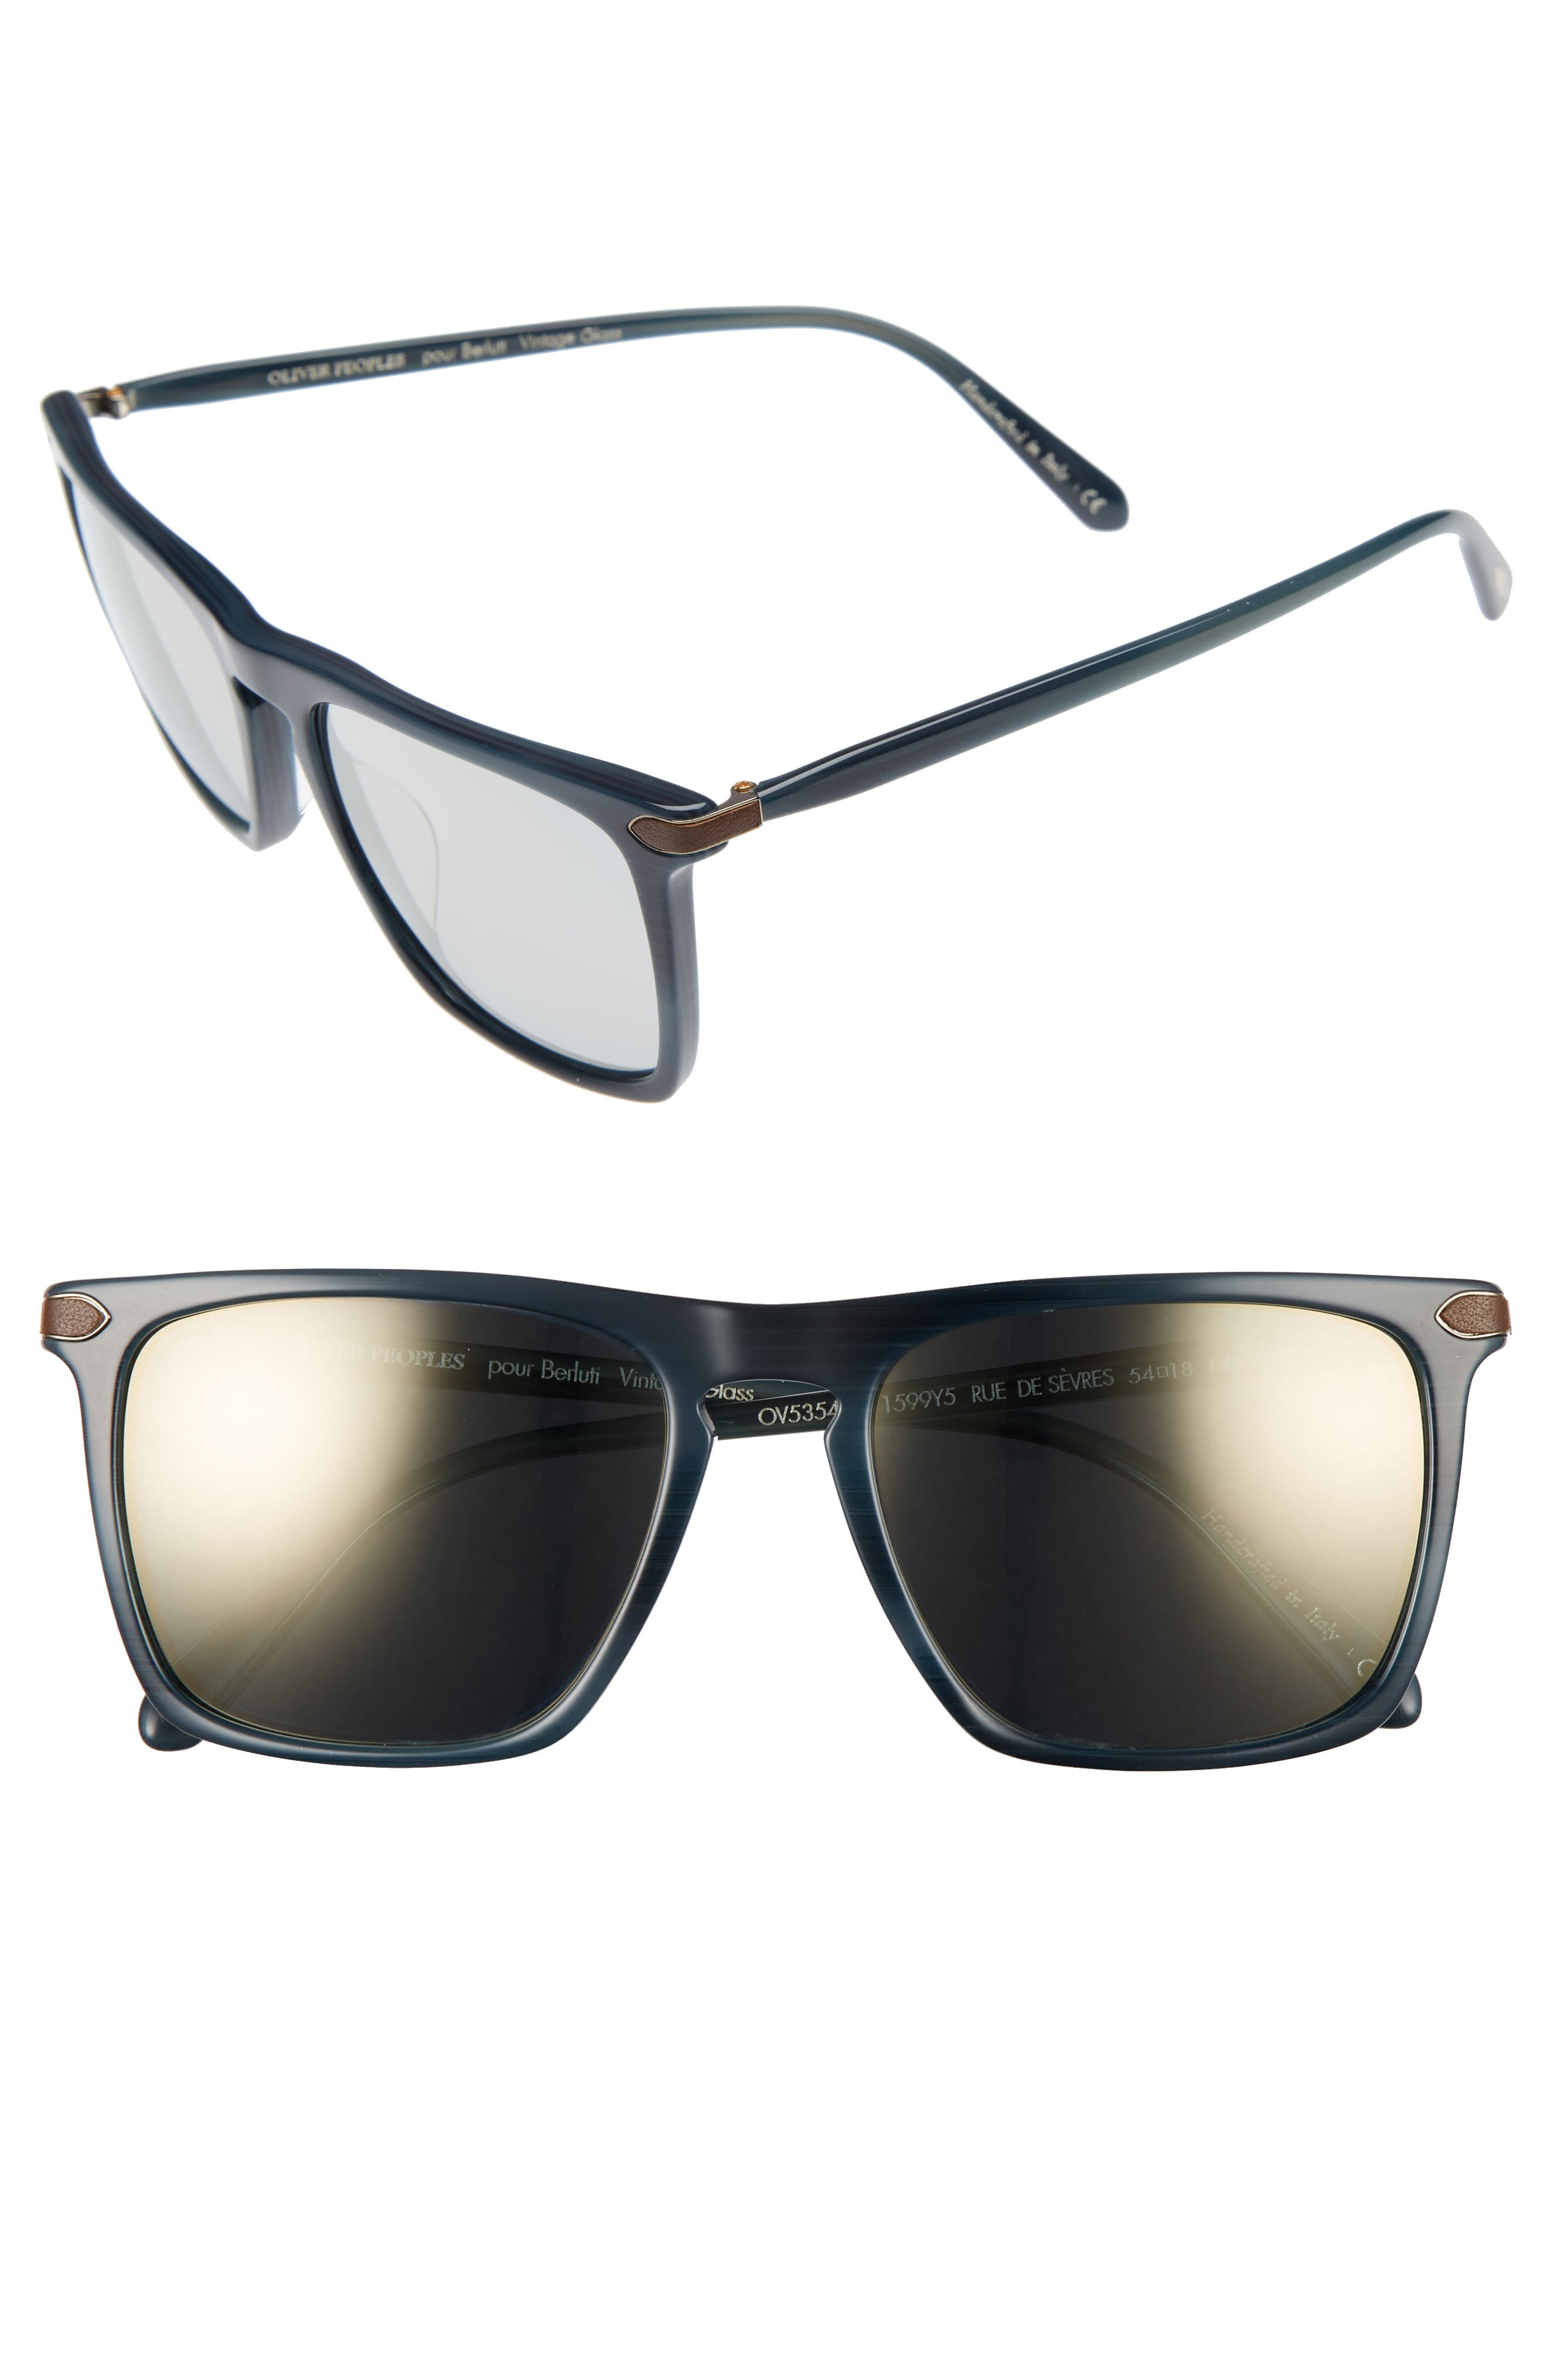 Alternate Image 1 Selected - Oliver Peoples Rue De Sevres 54mm Polarized Sunglasses